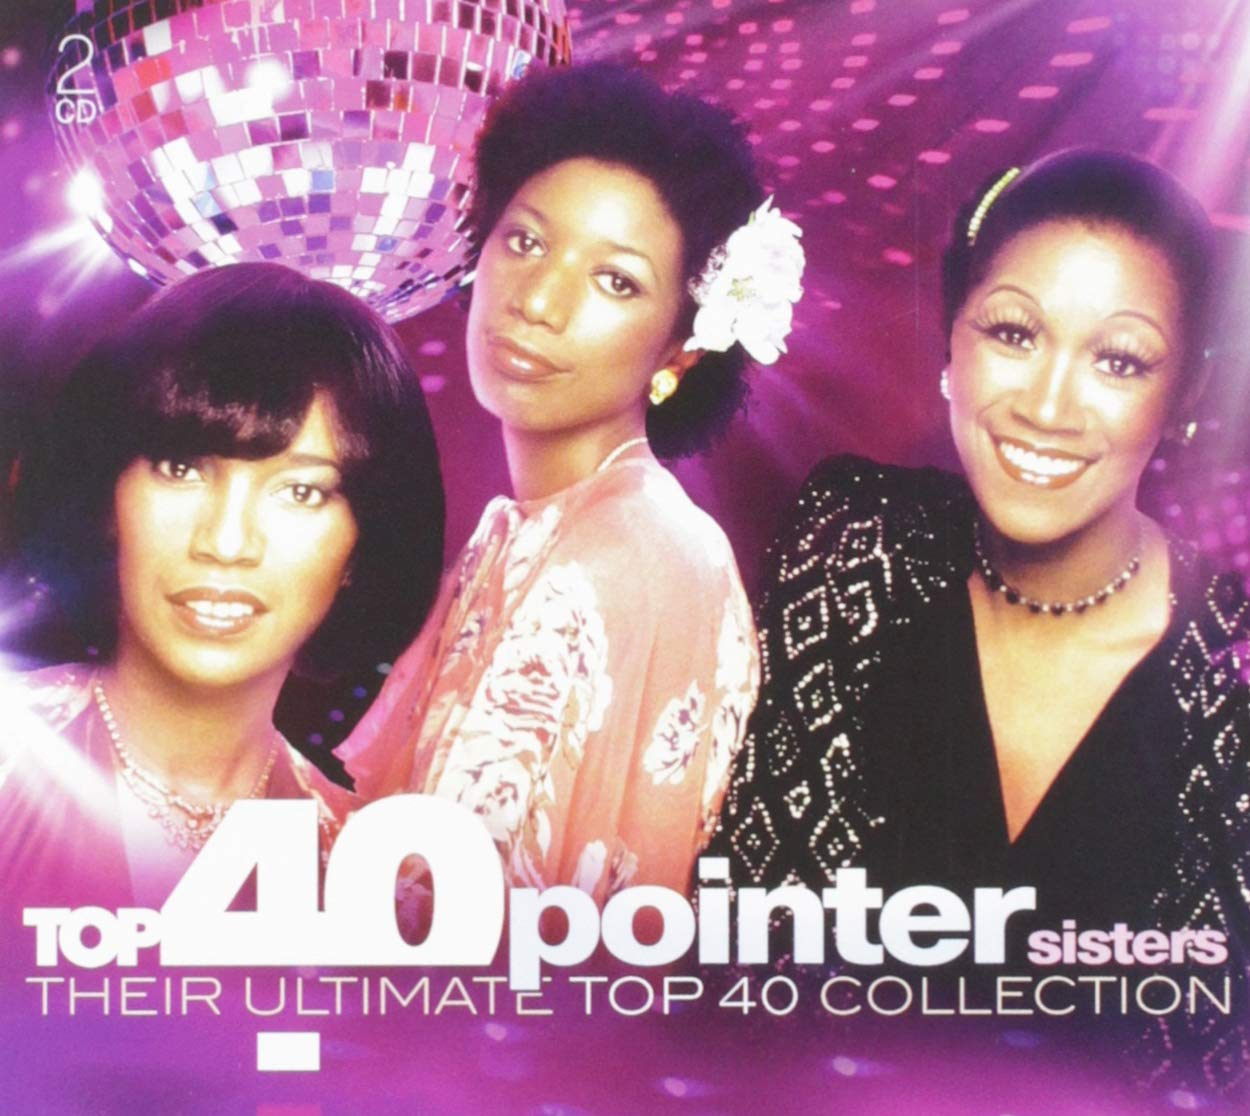 Natalia Meets The Pointer Sisters – Top 40  Their Ultimate Top 40 Collection (2019) [FLAC]